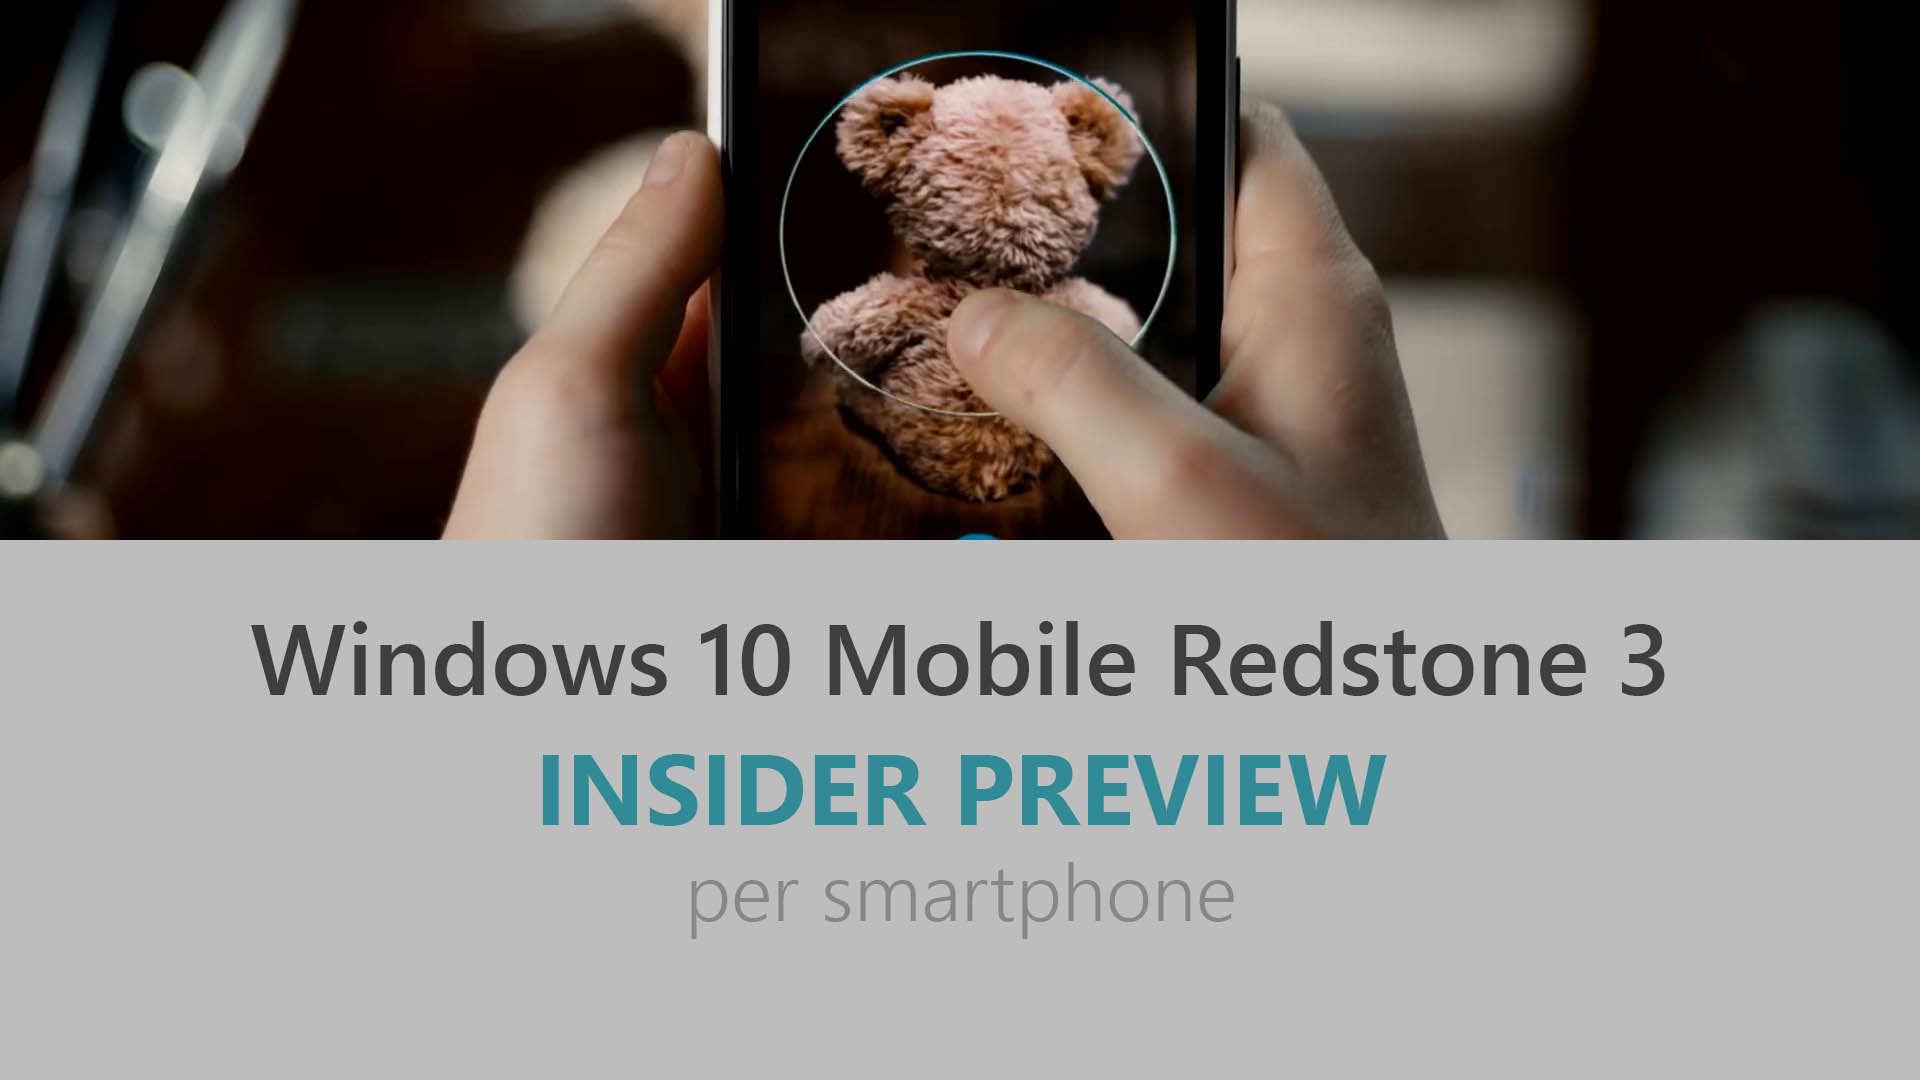 Windows 10 Mobile - Redstone 3